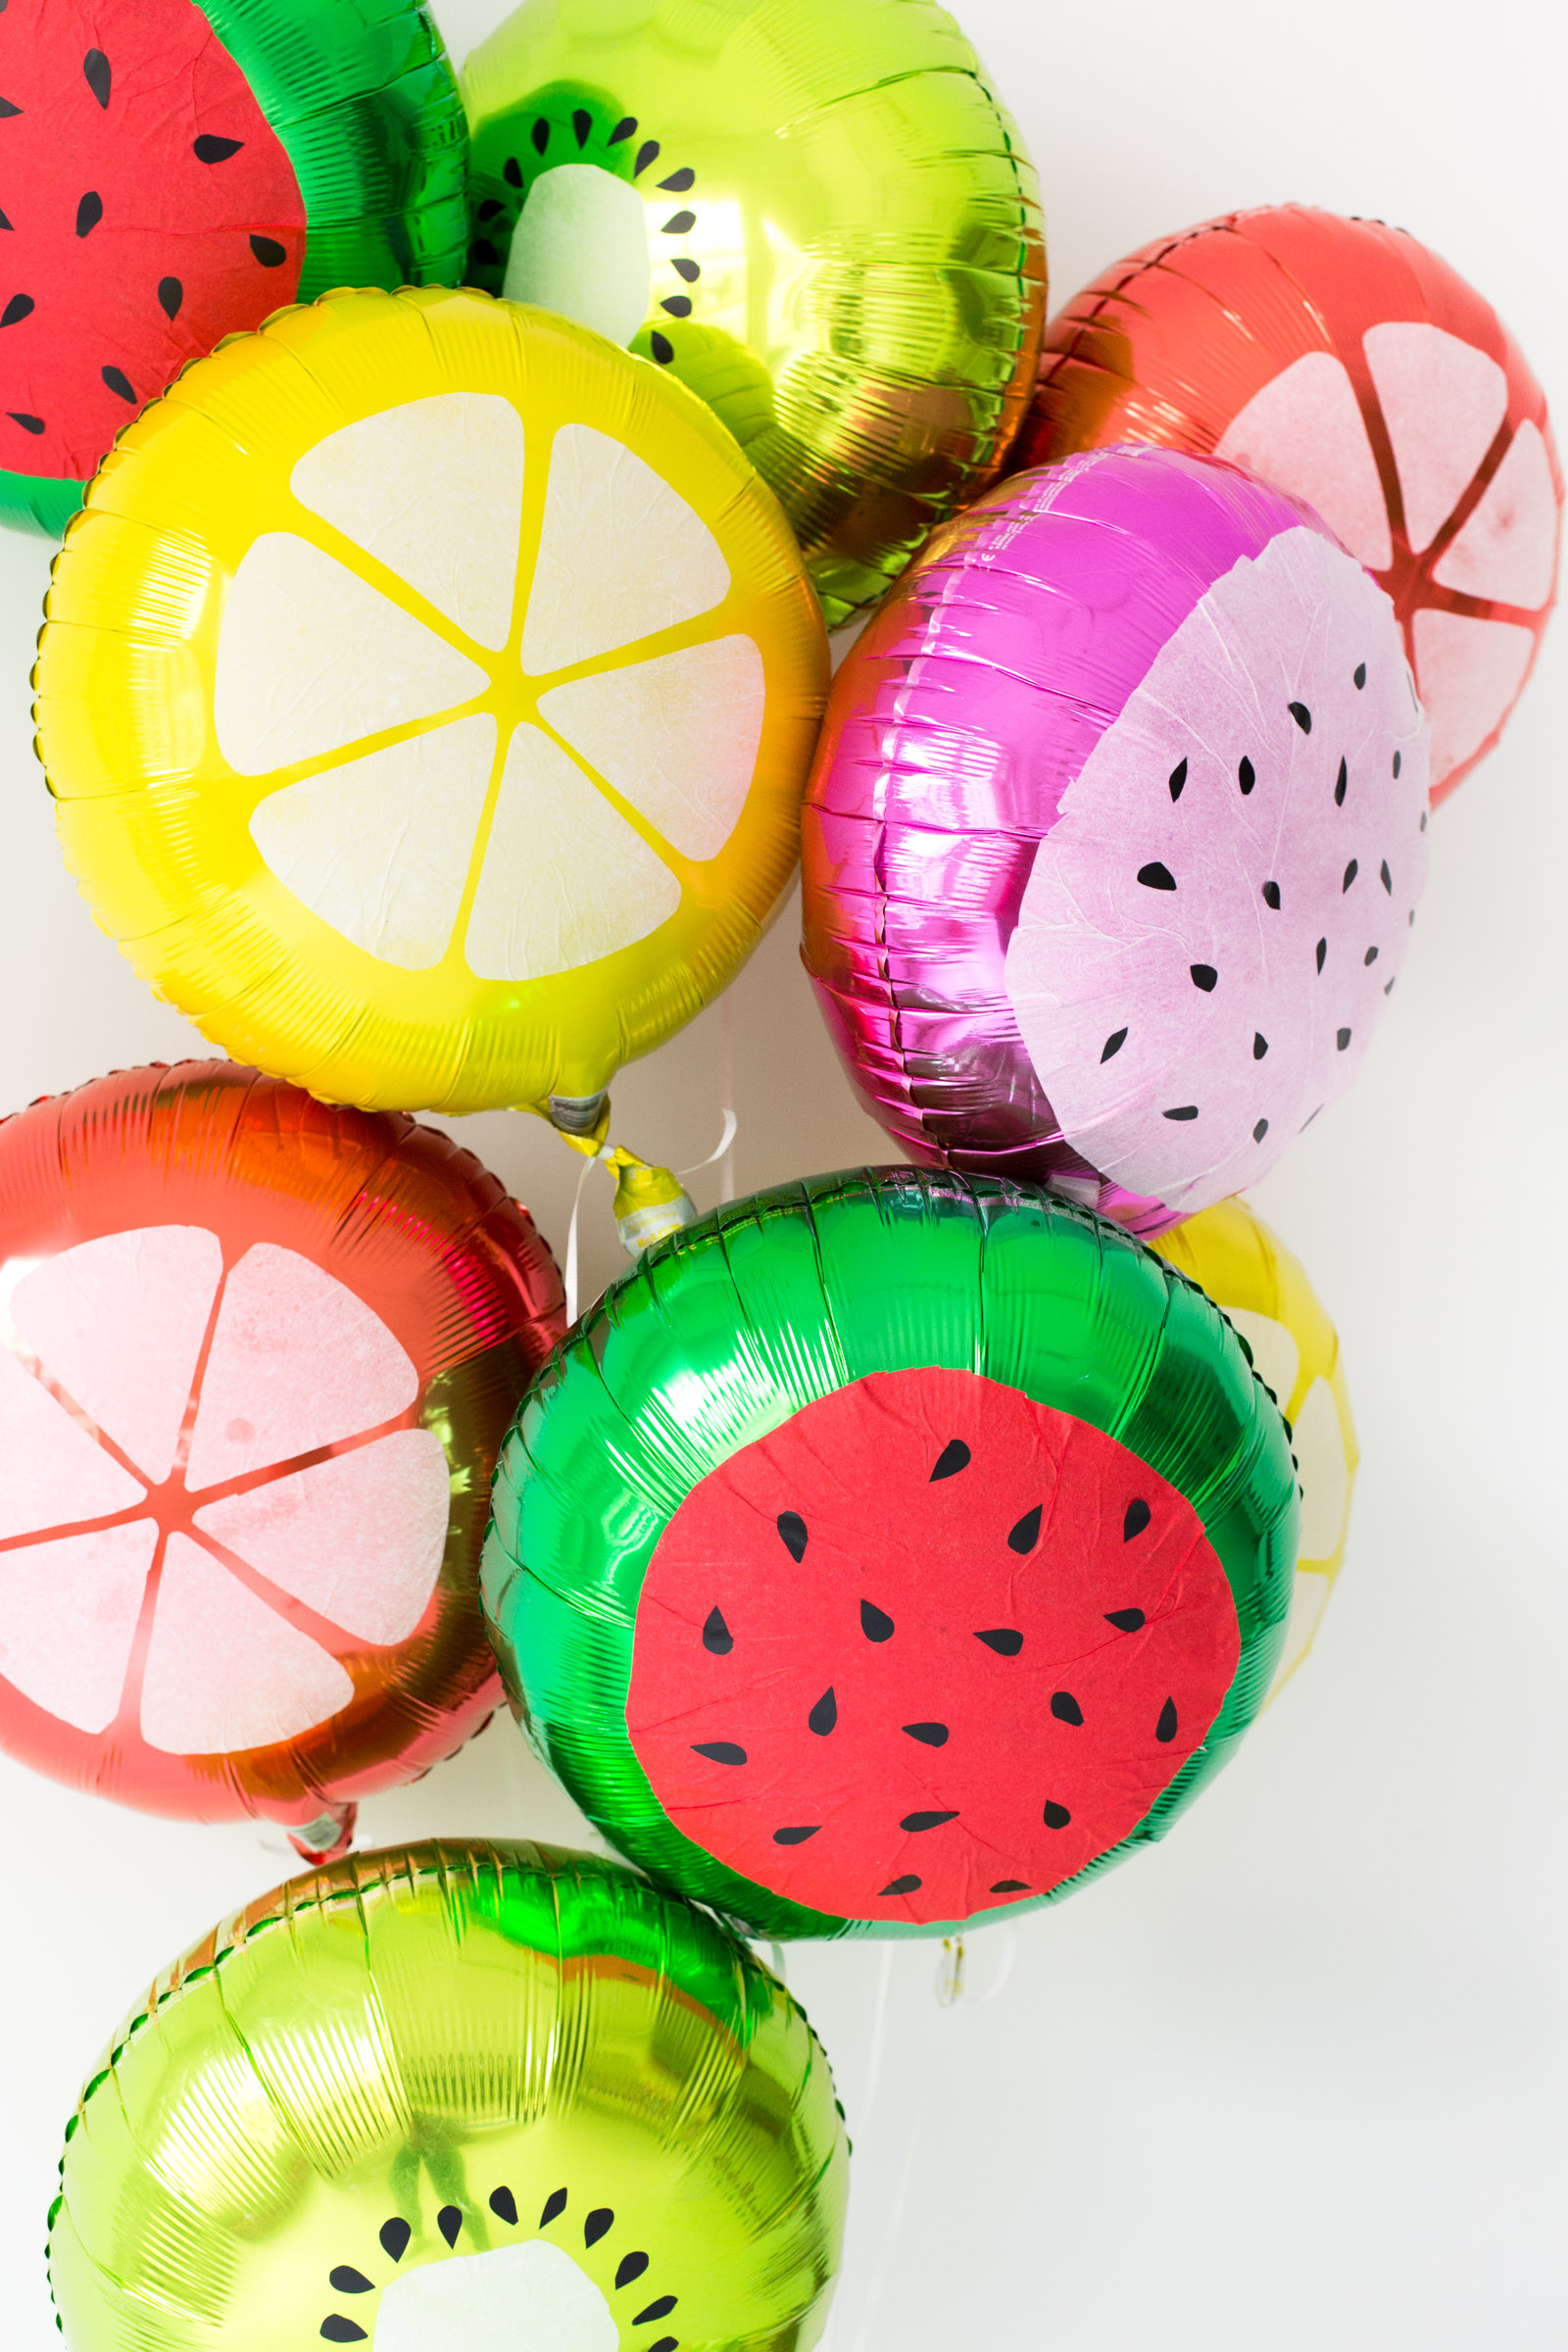 Fruit slice balloons from Studio DIY